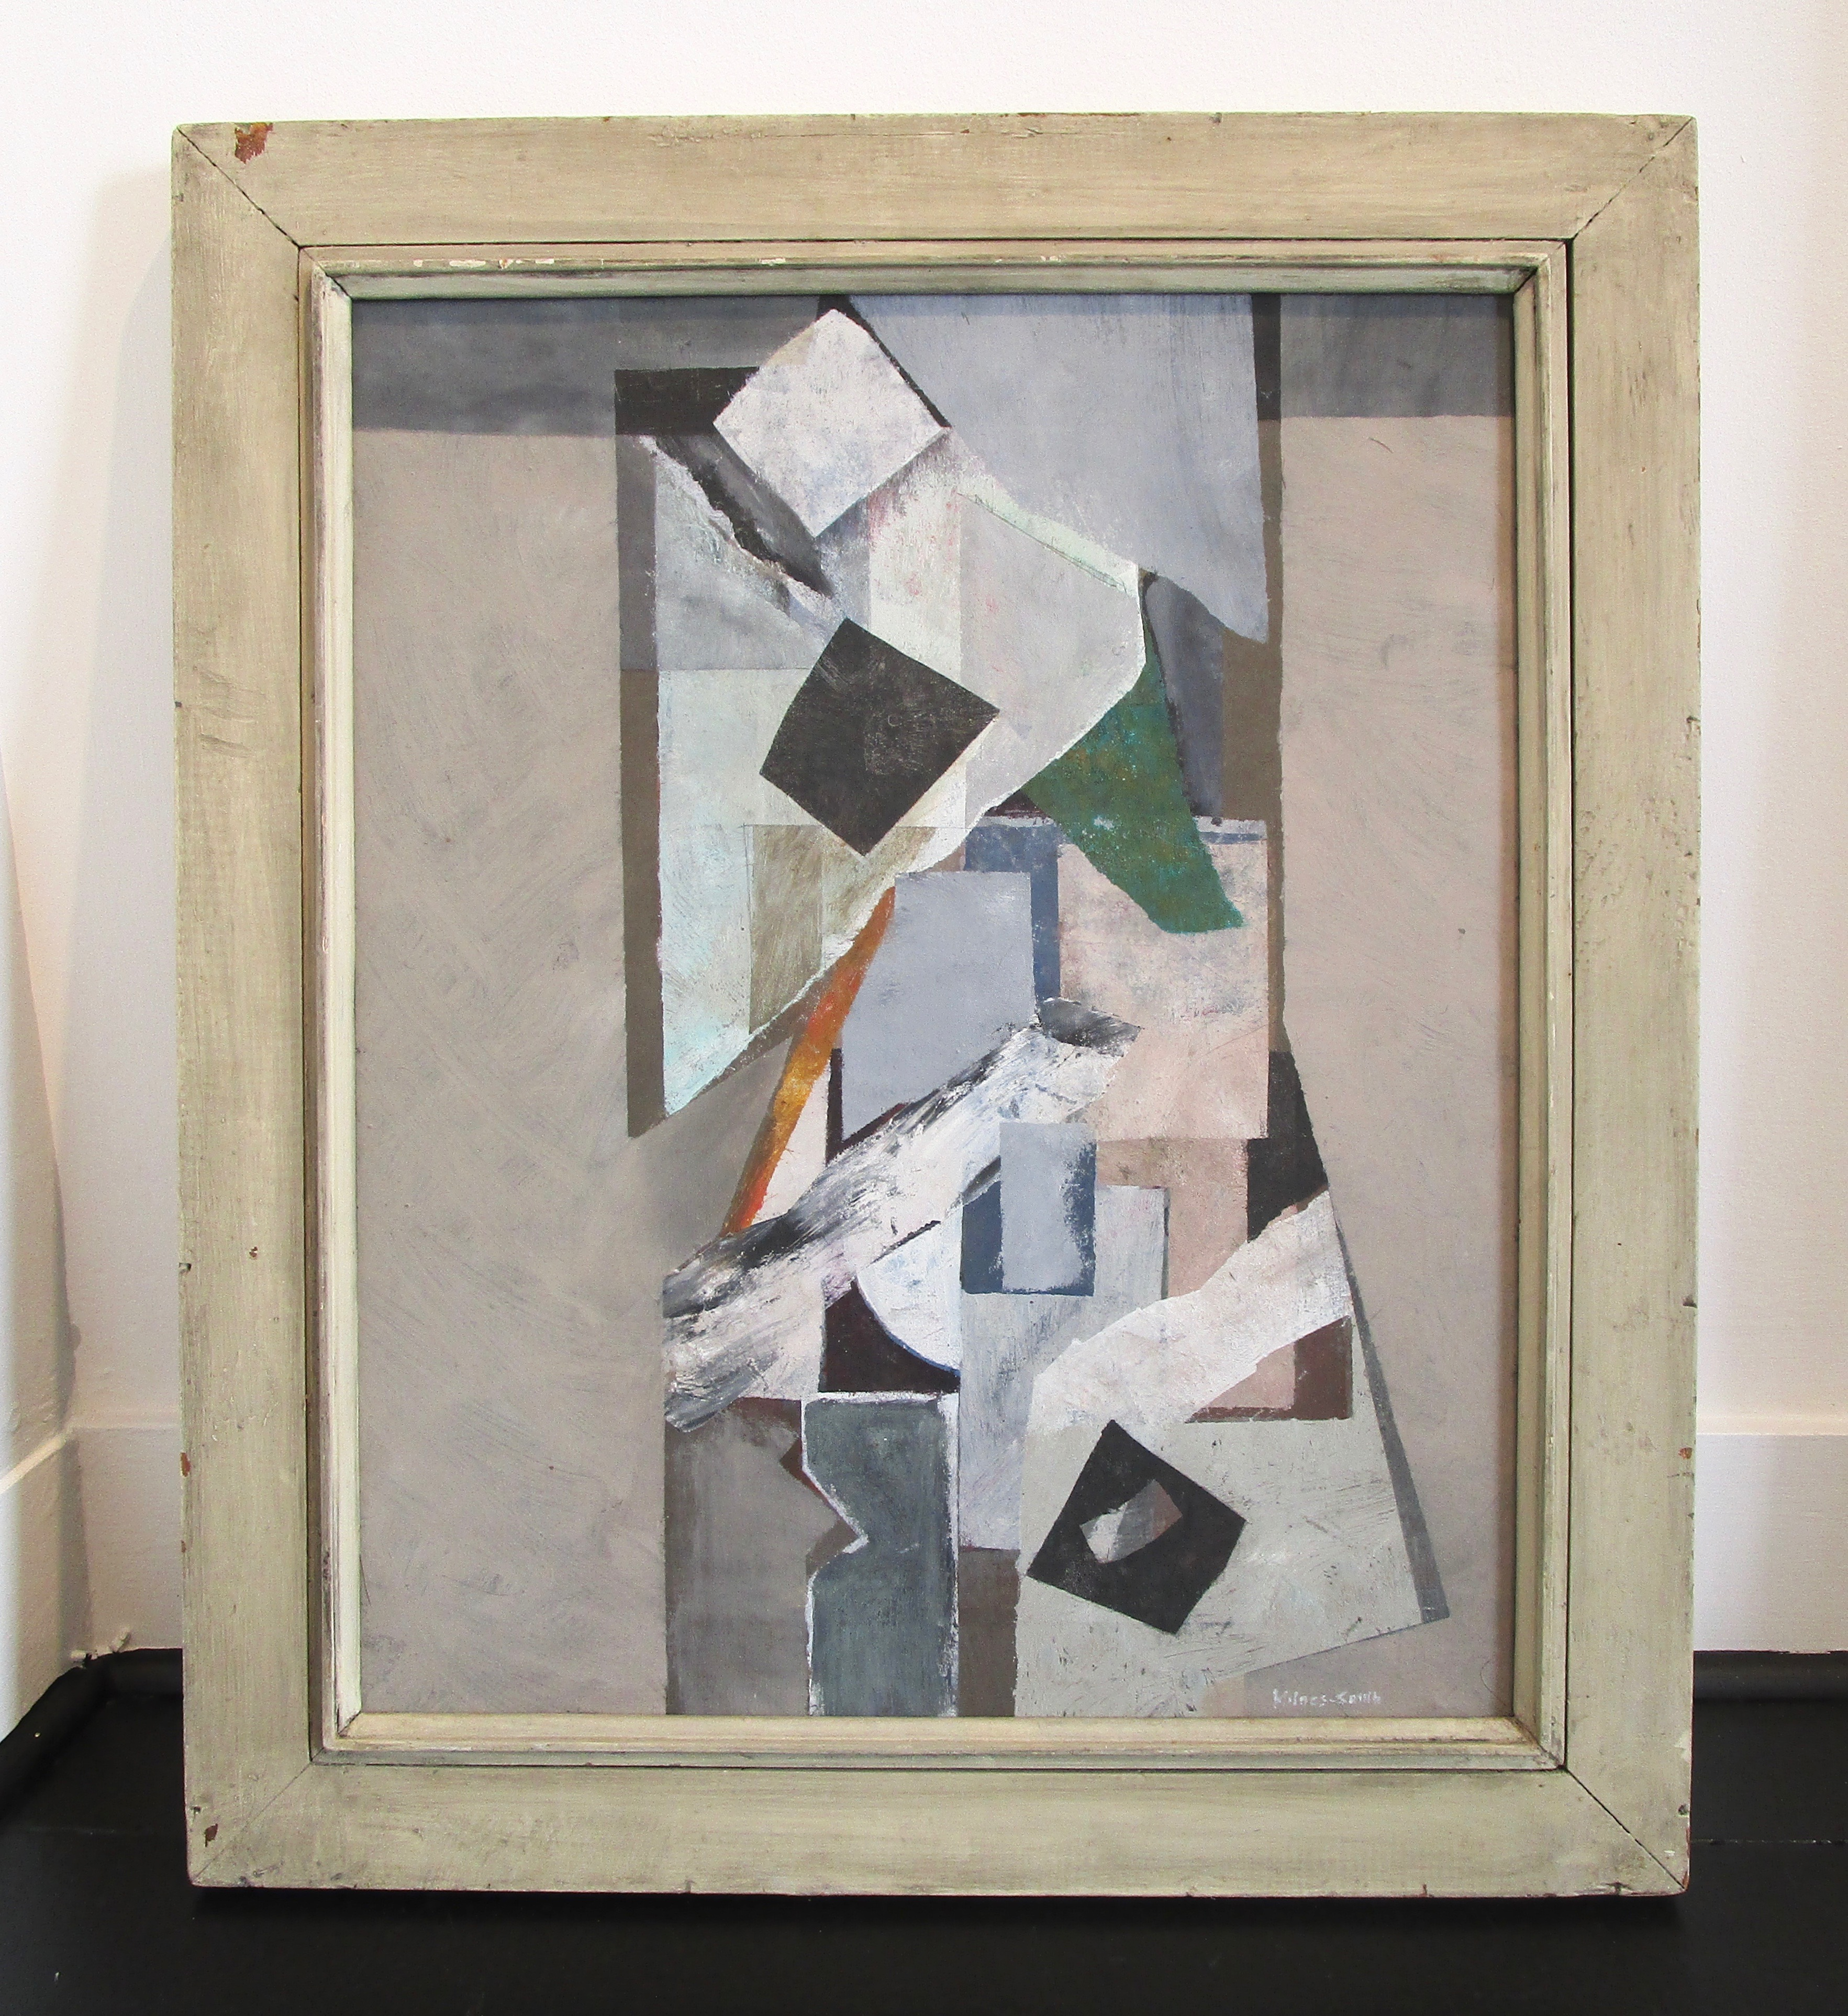 JOHN MILNES-SMITH [1912-1998]. Centre Piece, 1986. Oil on canvas. Signed lower right, titled and - Image 2 of 3